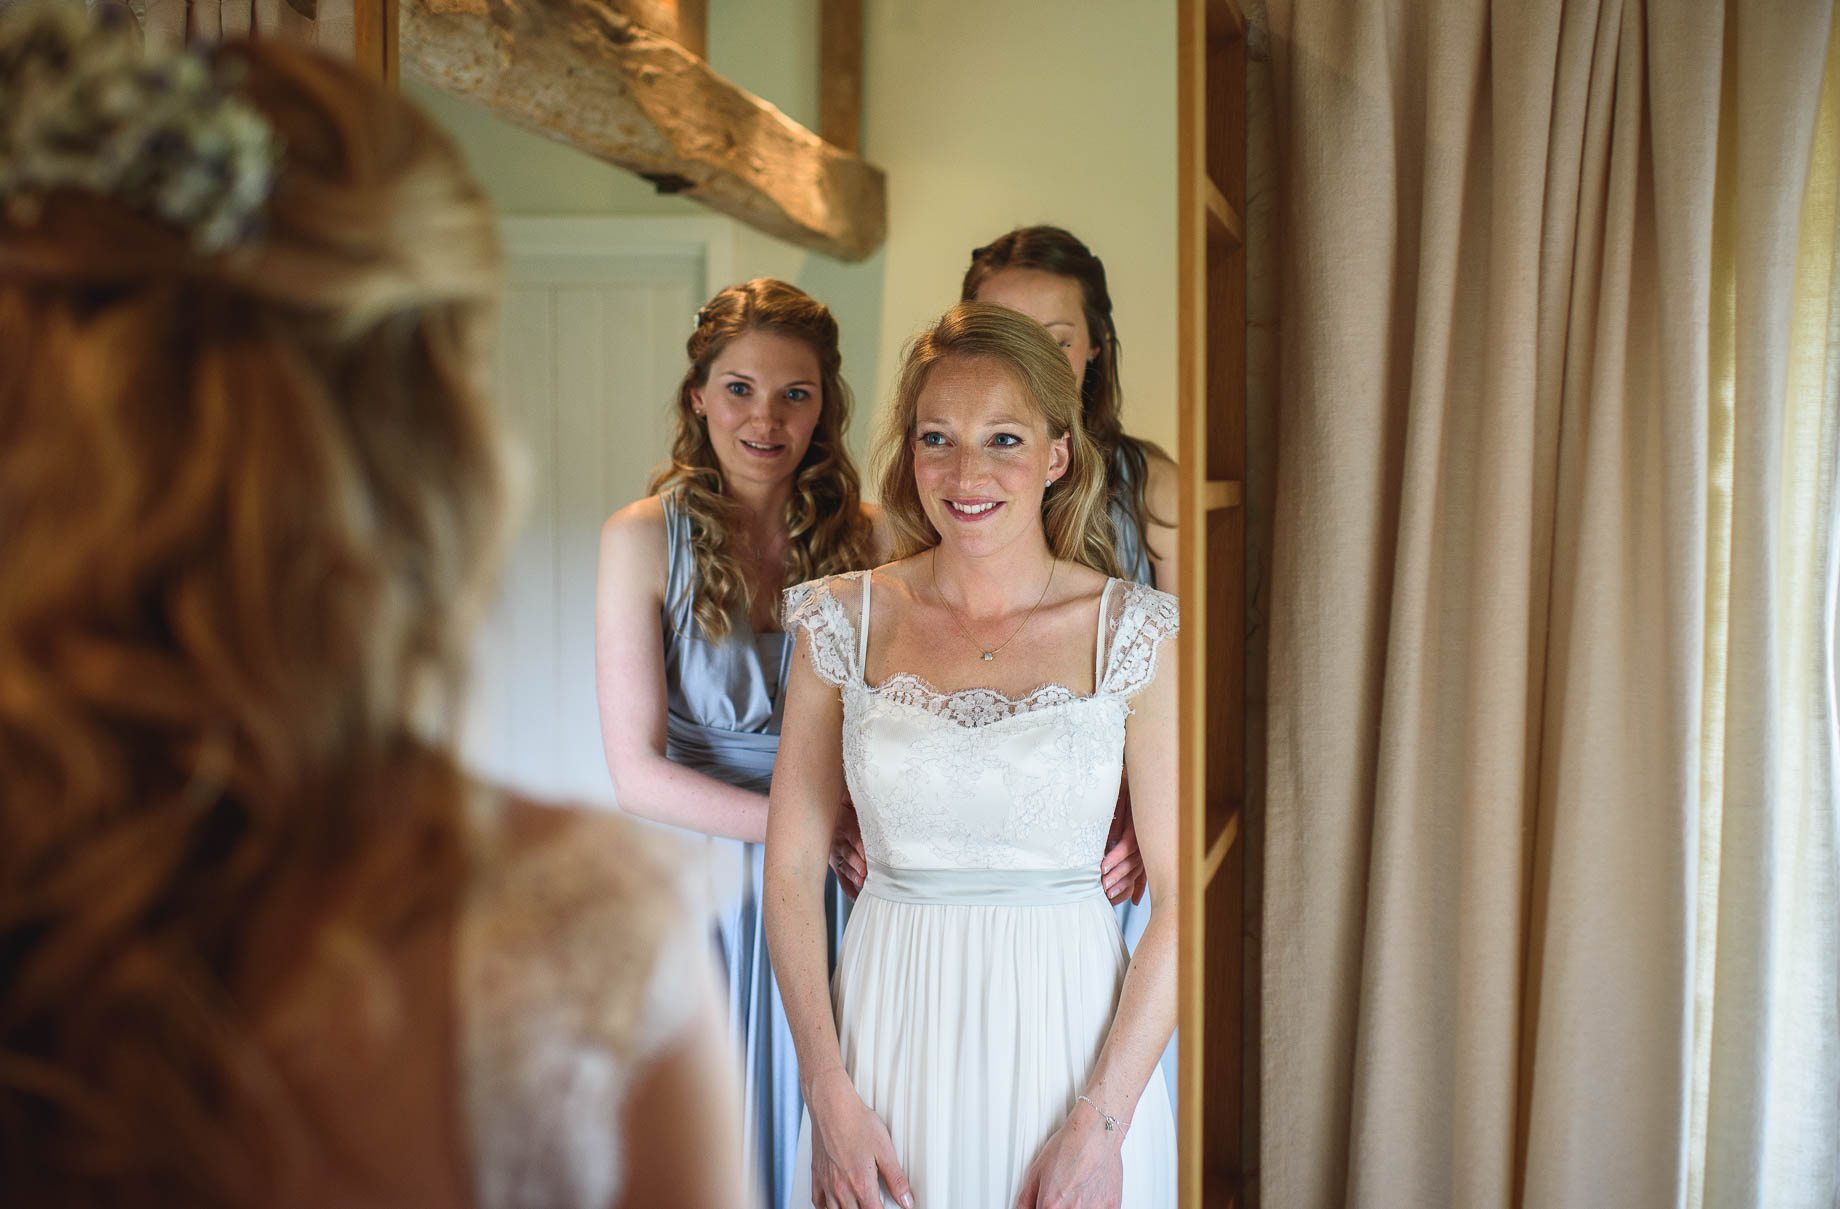 Bury Court Barn wedding photography by Guy Collier - Heather and Pat (17 of 170)